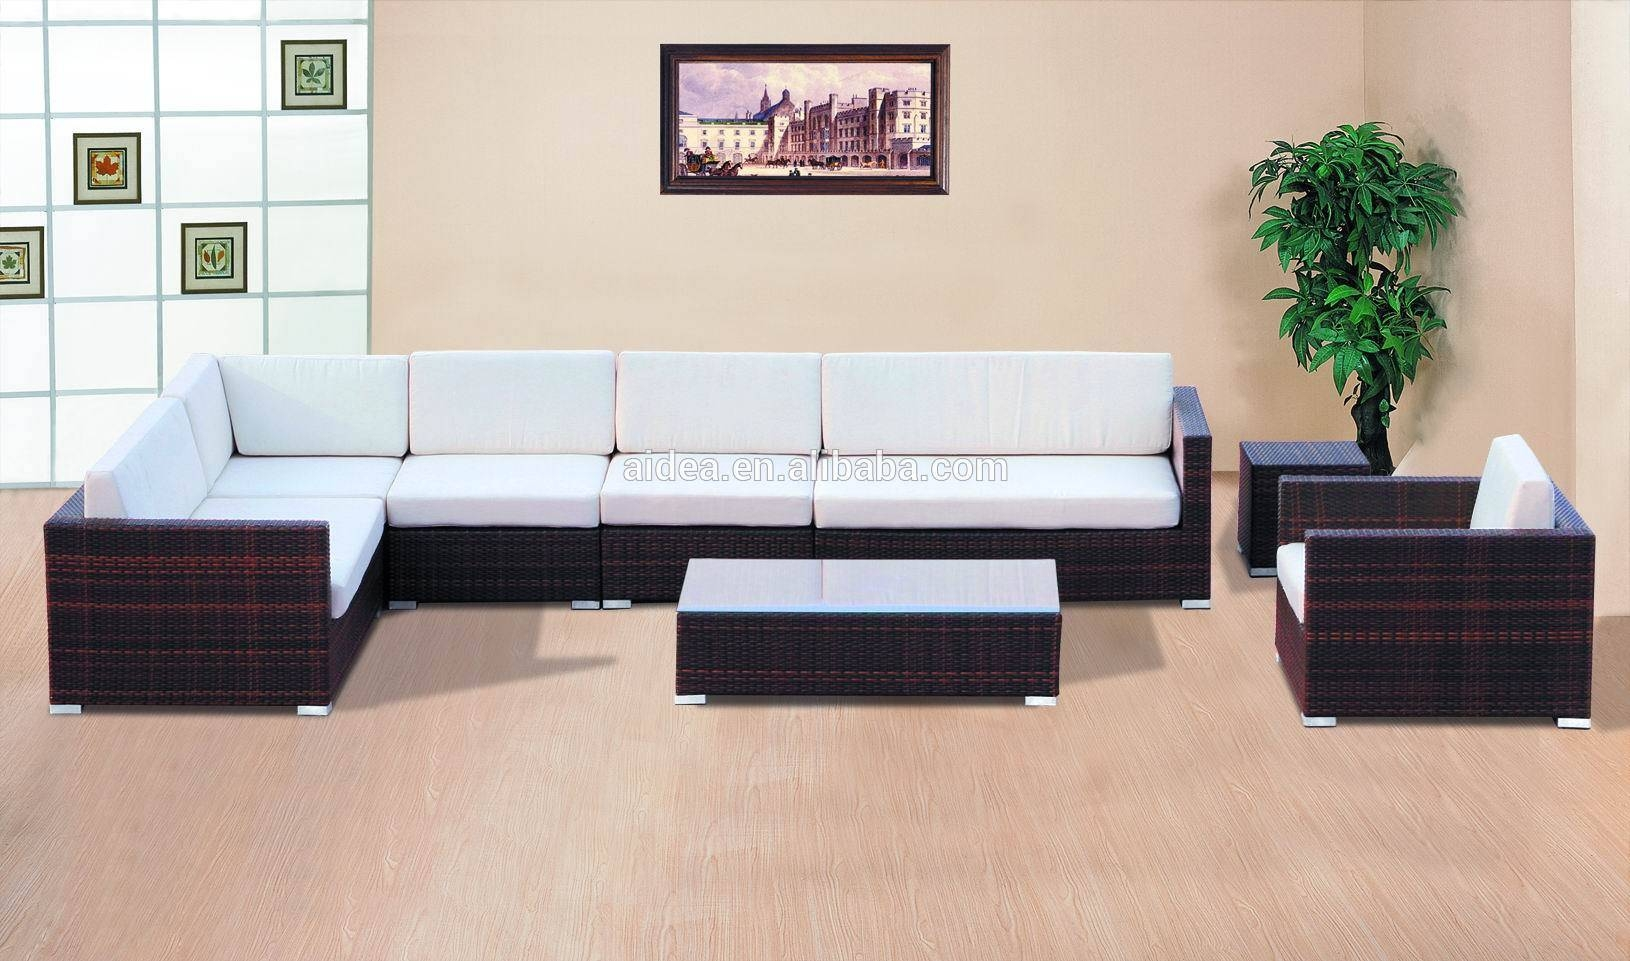 Cebu Rattan Furniture, Cebu Rattan Furniture Suppliers And inside Modern Rattan Sofas (Image 9 of 30)